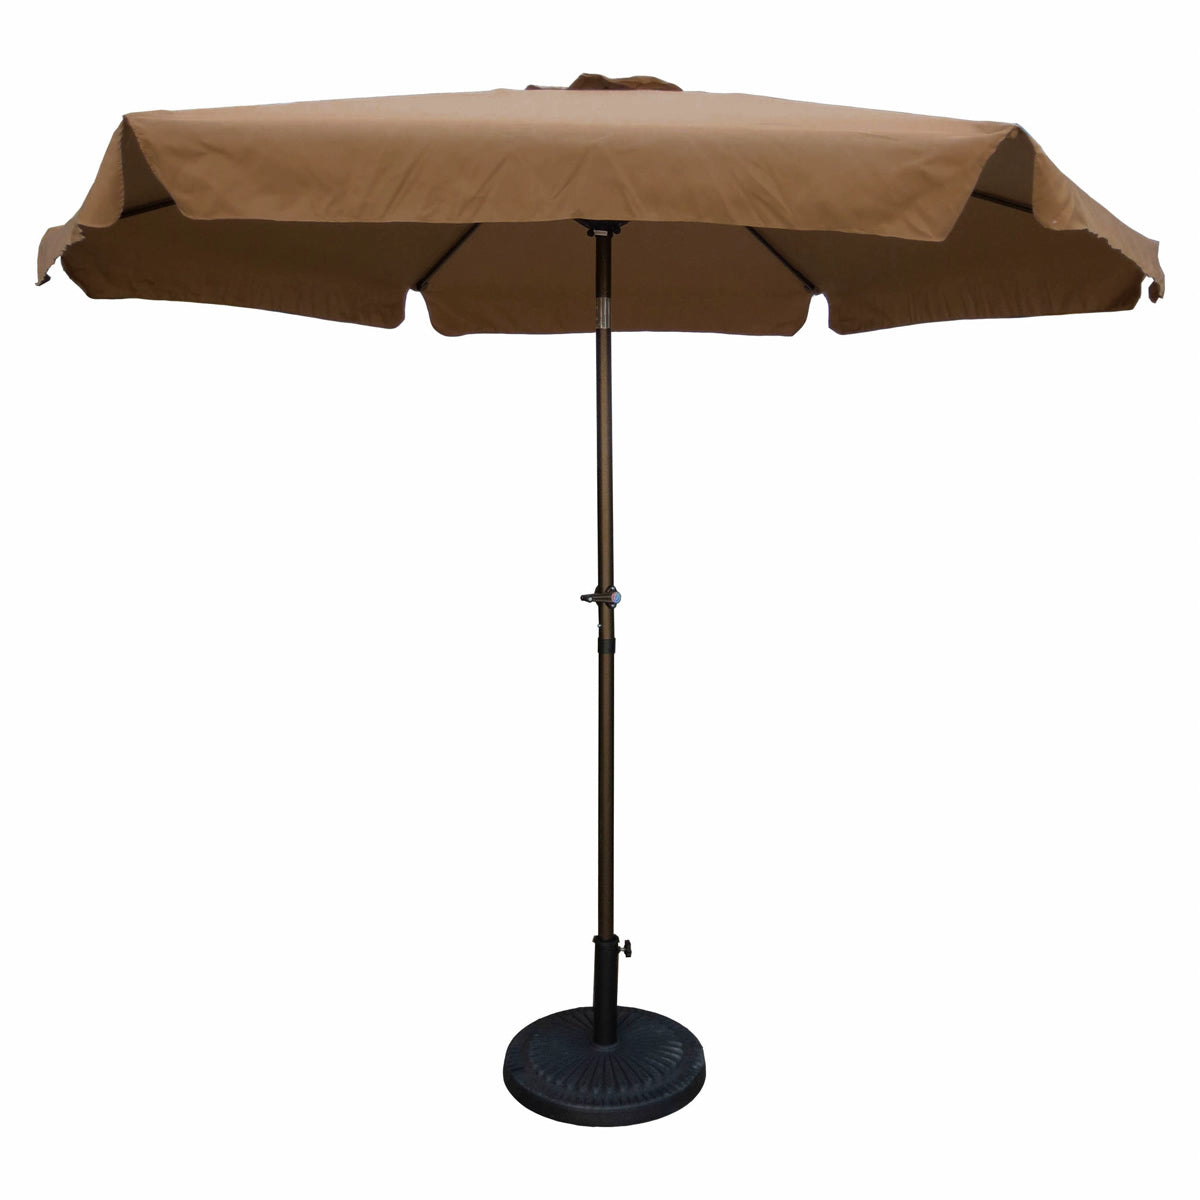 Outdoor 9 Foot Aluminum Umbrella With Flaps Chocolate/Coffee by International Caravan - 1